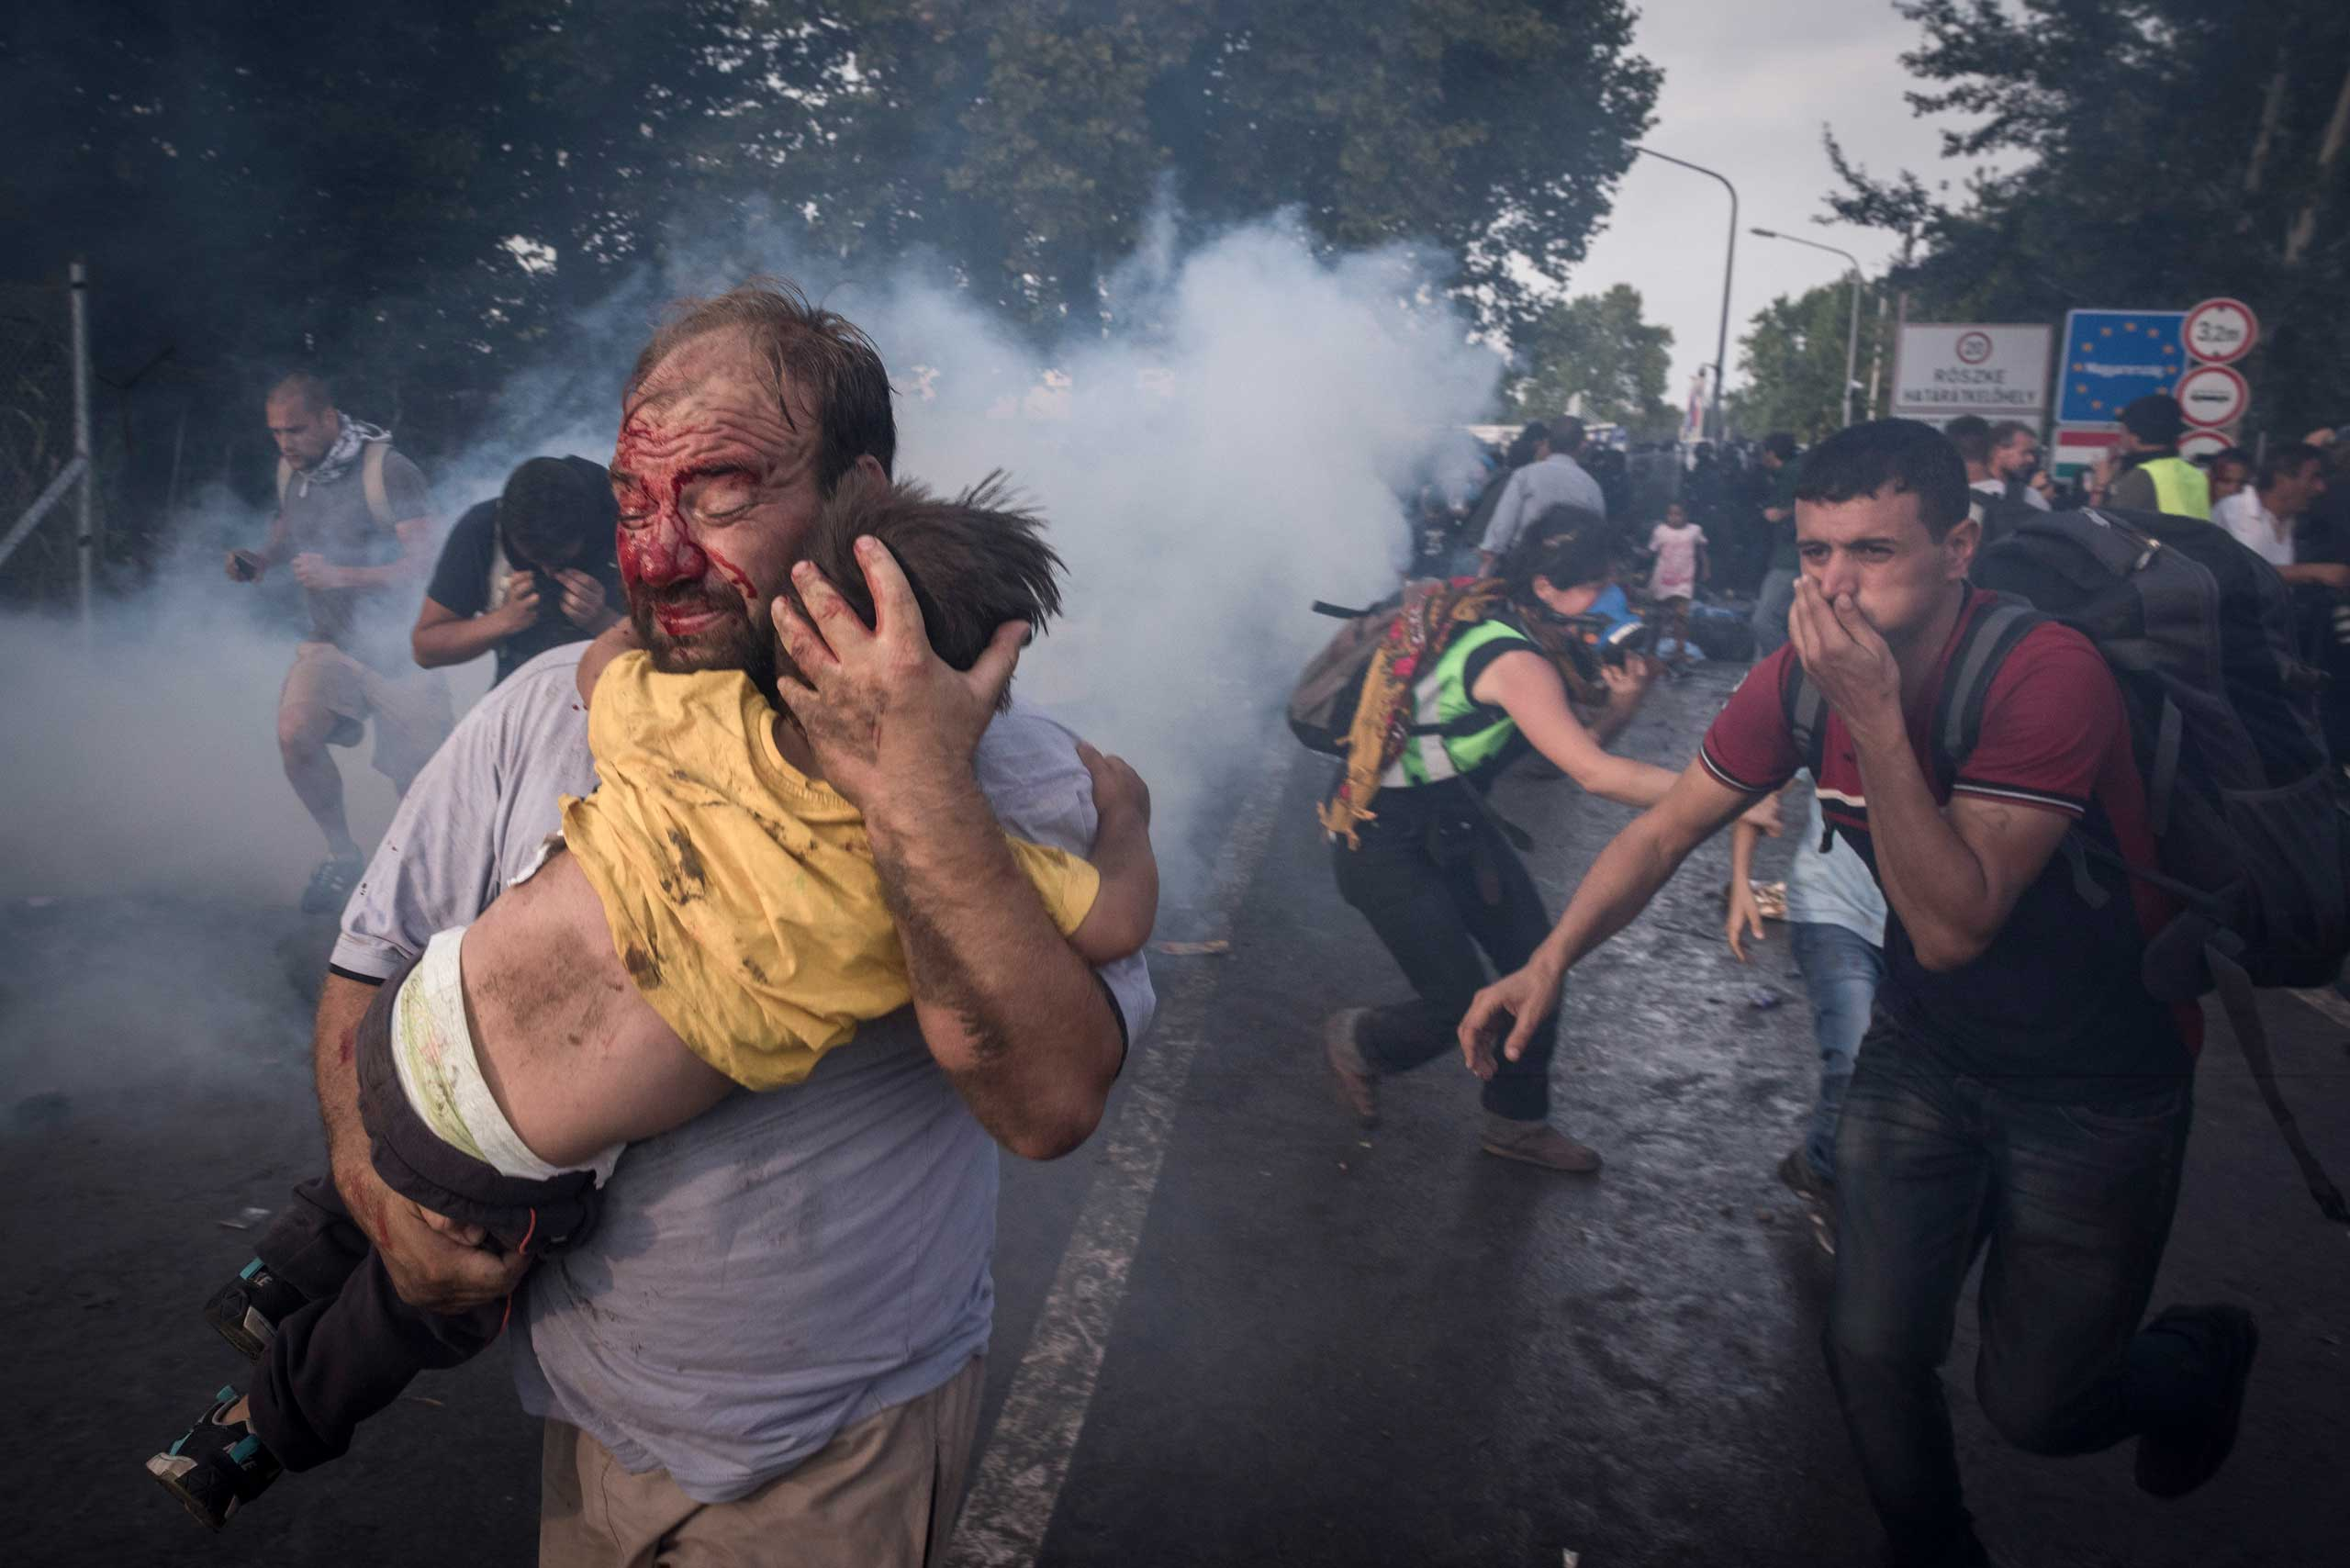 A migrant holds his child during a clash with Hungarian riot police at the Horgos border crossing in Serbia. Hungary's decision to seal its border rippled across Europe and other migrants scrambled to find alternative routes in an effort, in most cases, to reach Germany. Sept. 16, 2015.